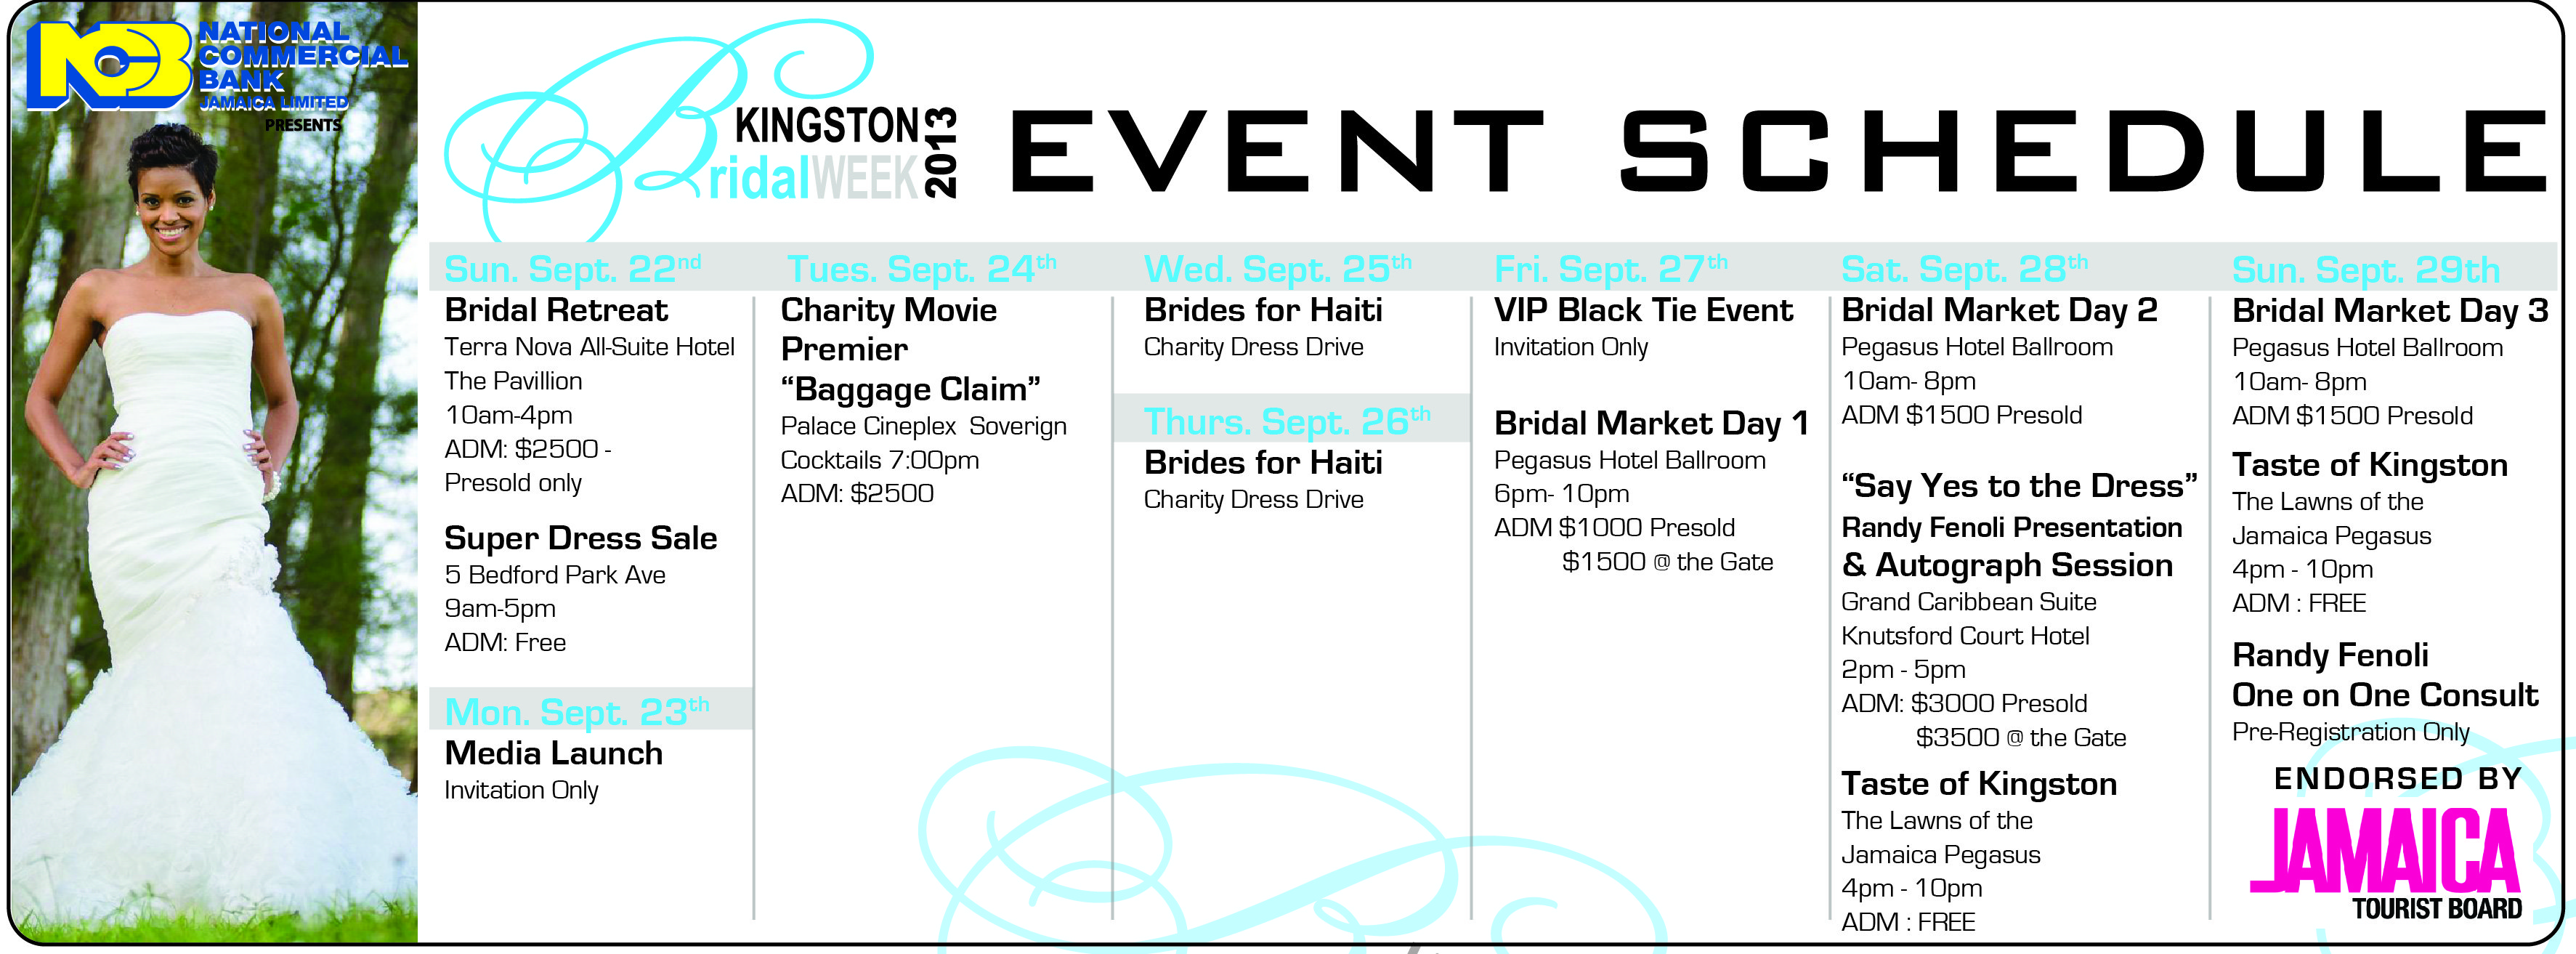 Kingston Bridal Week 2013 Schedule